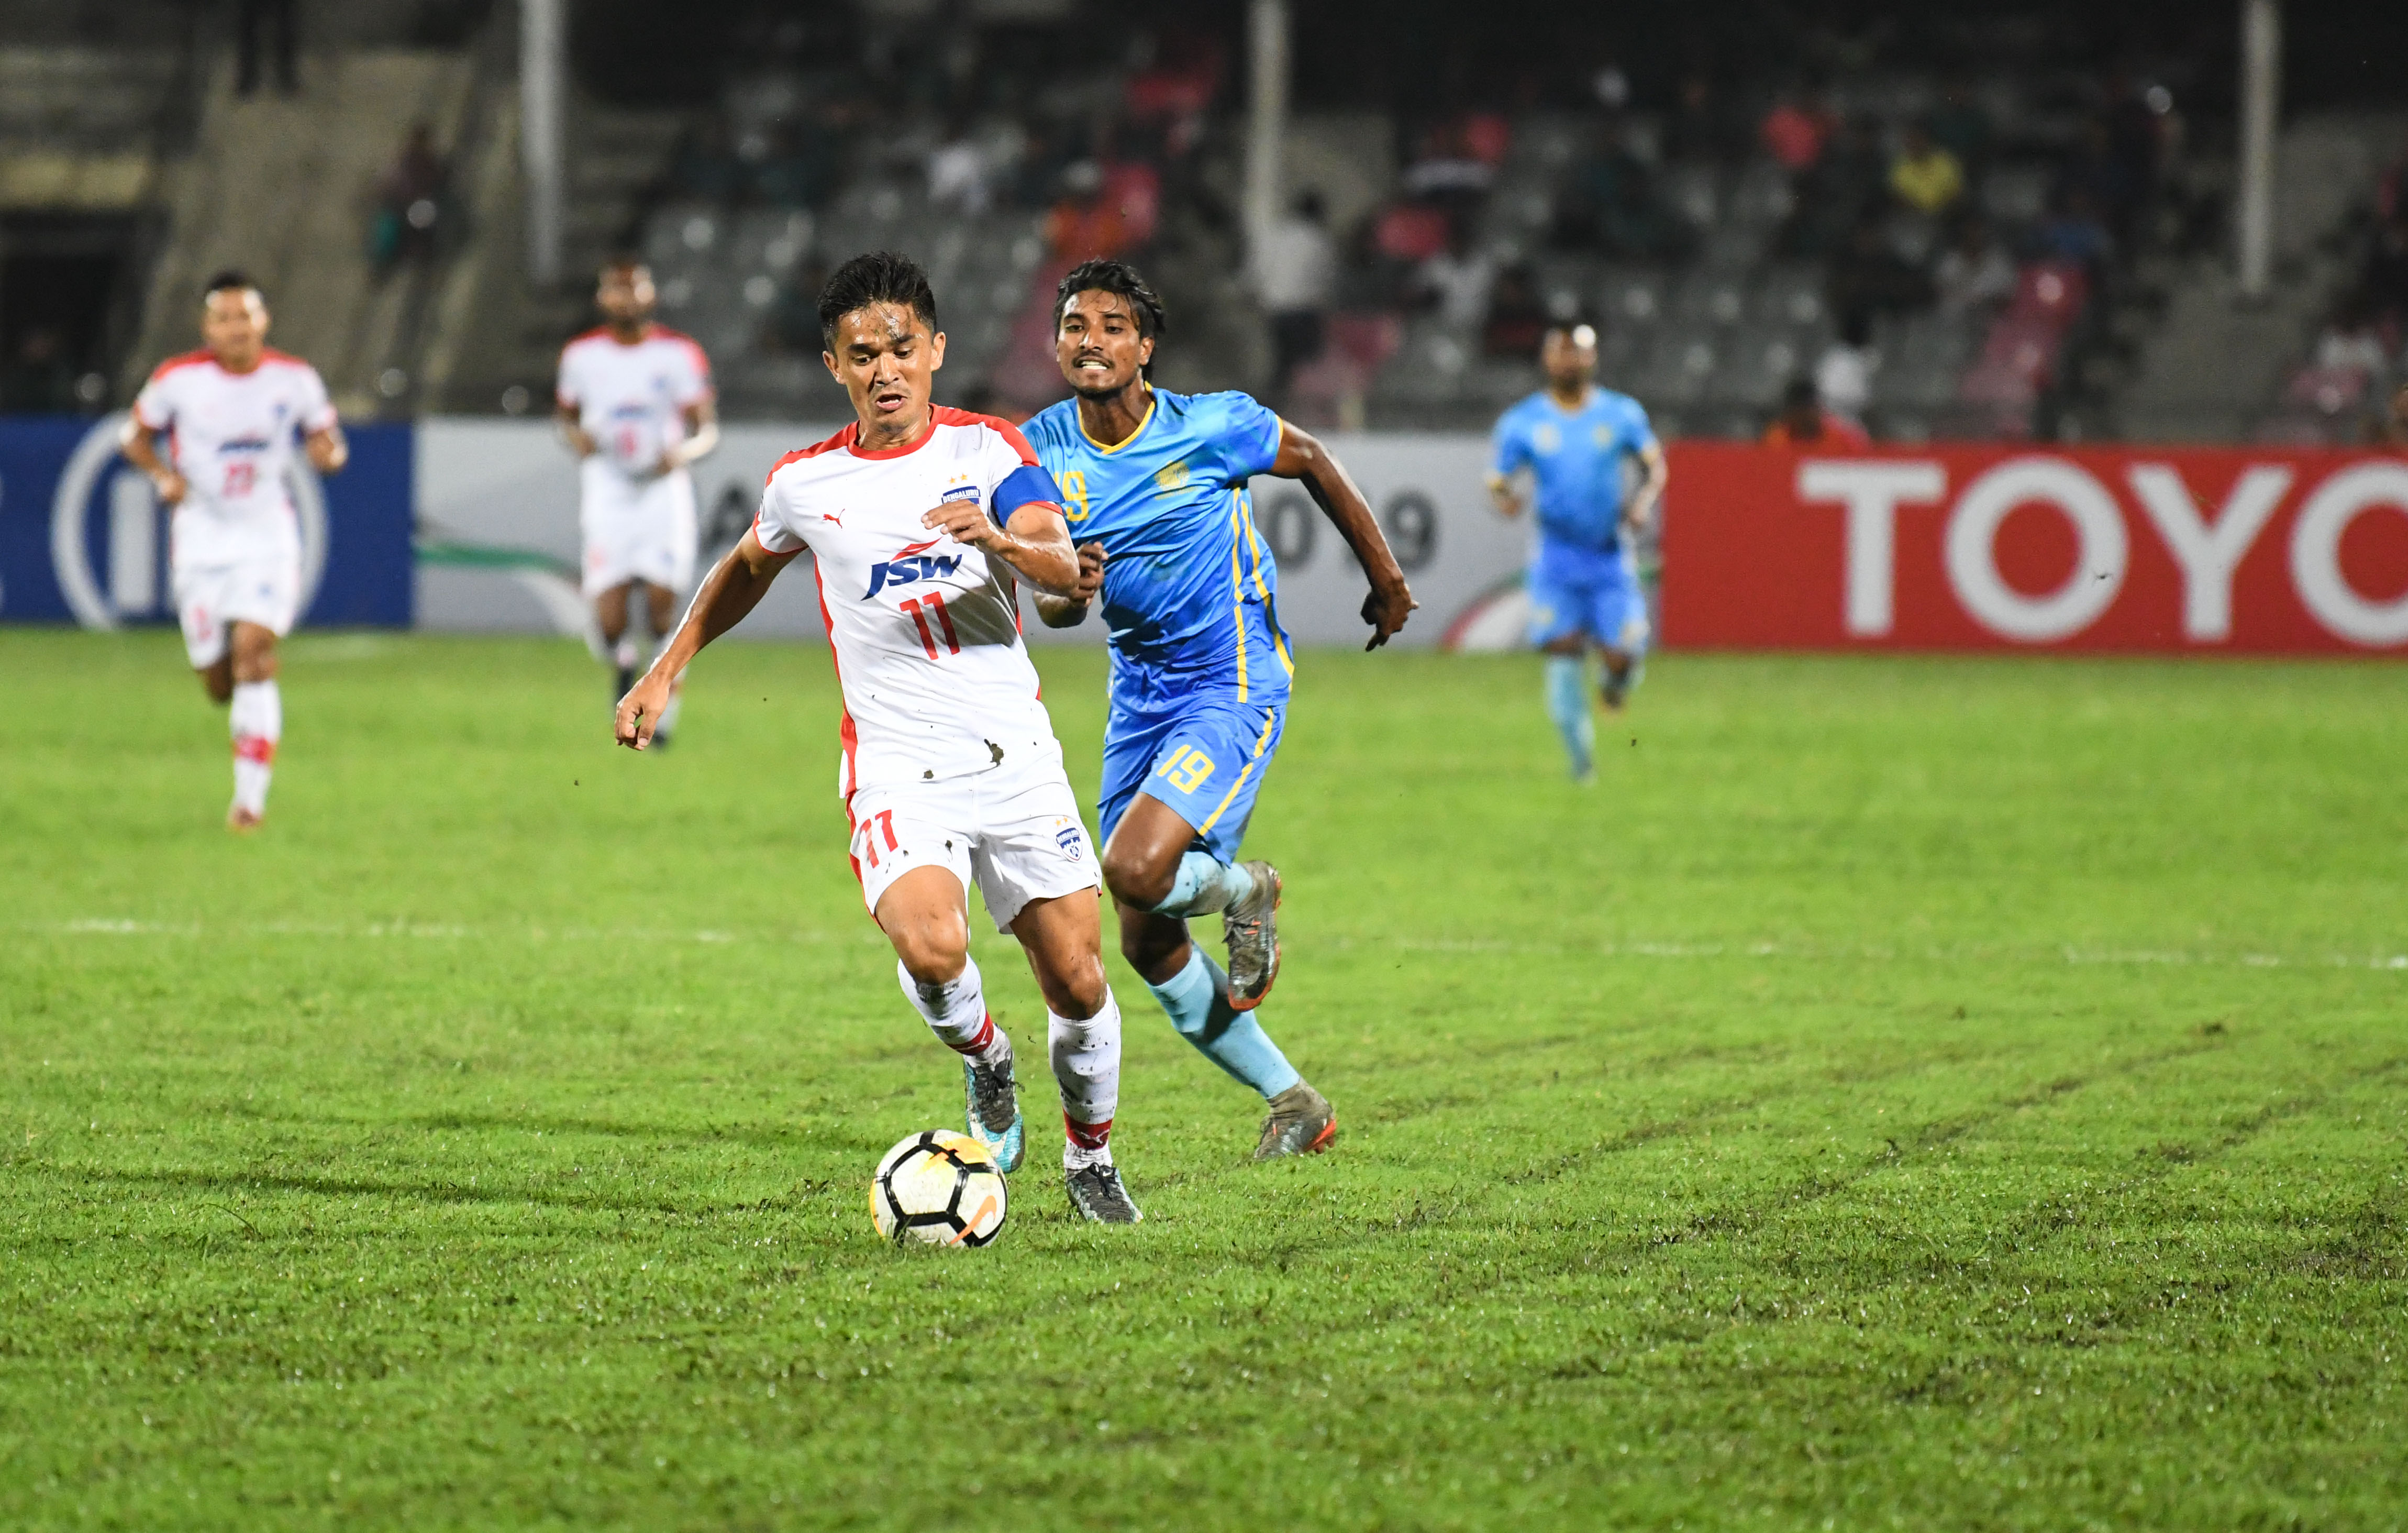 Chhetri and Aizawl help BFC enter knockouts